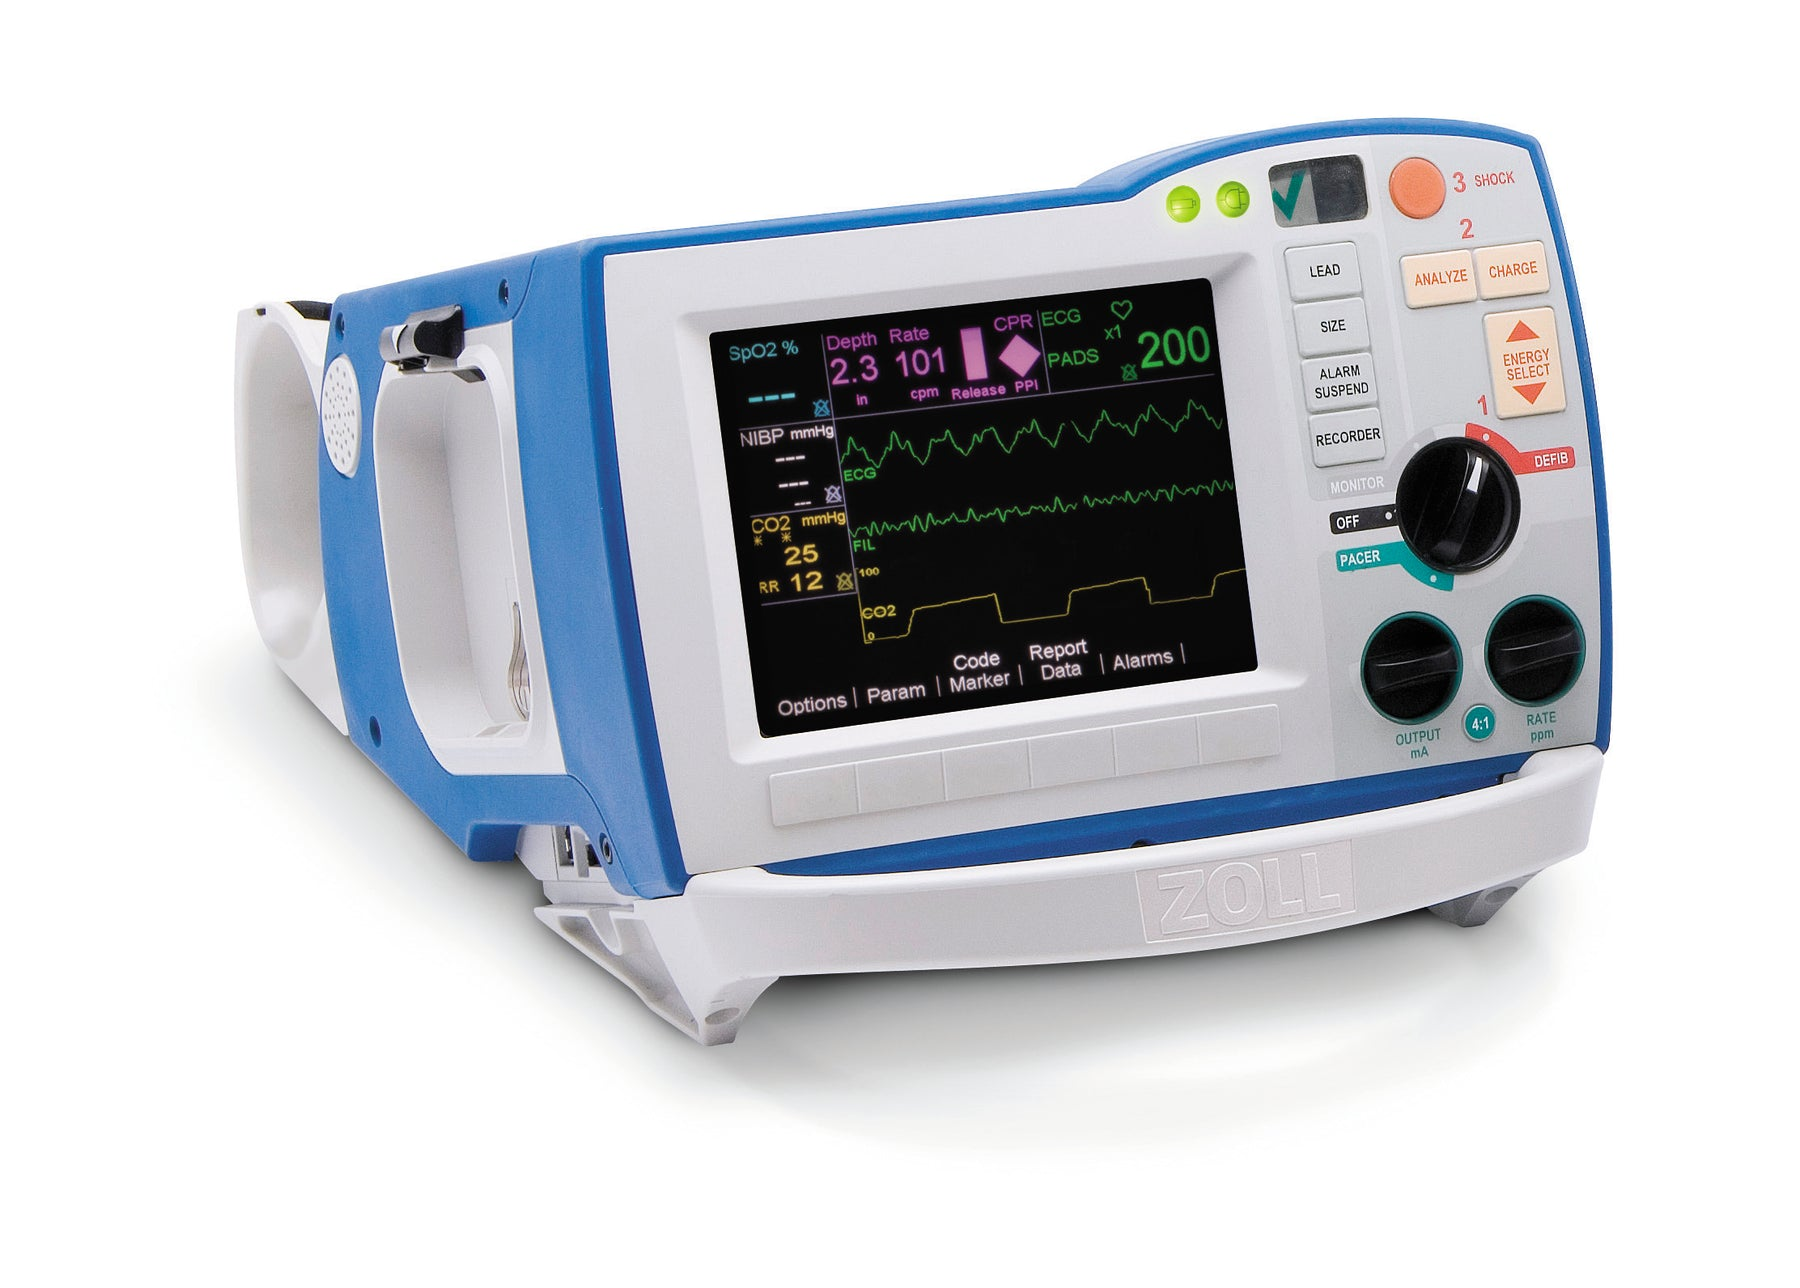 R Series ALS Defibrillator with Expansion Pack and OneStep Pacing-30120000001110012